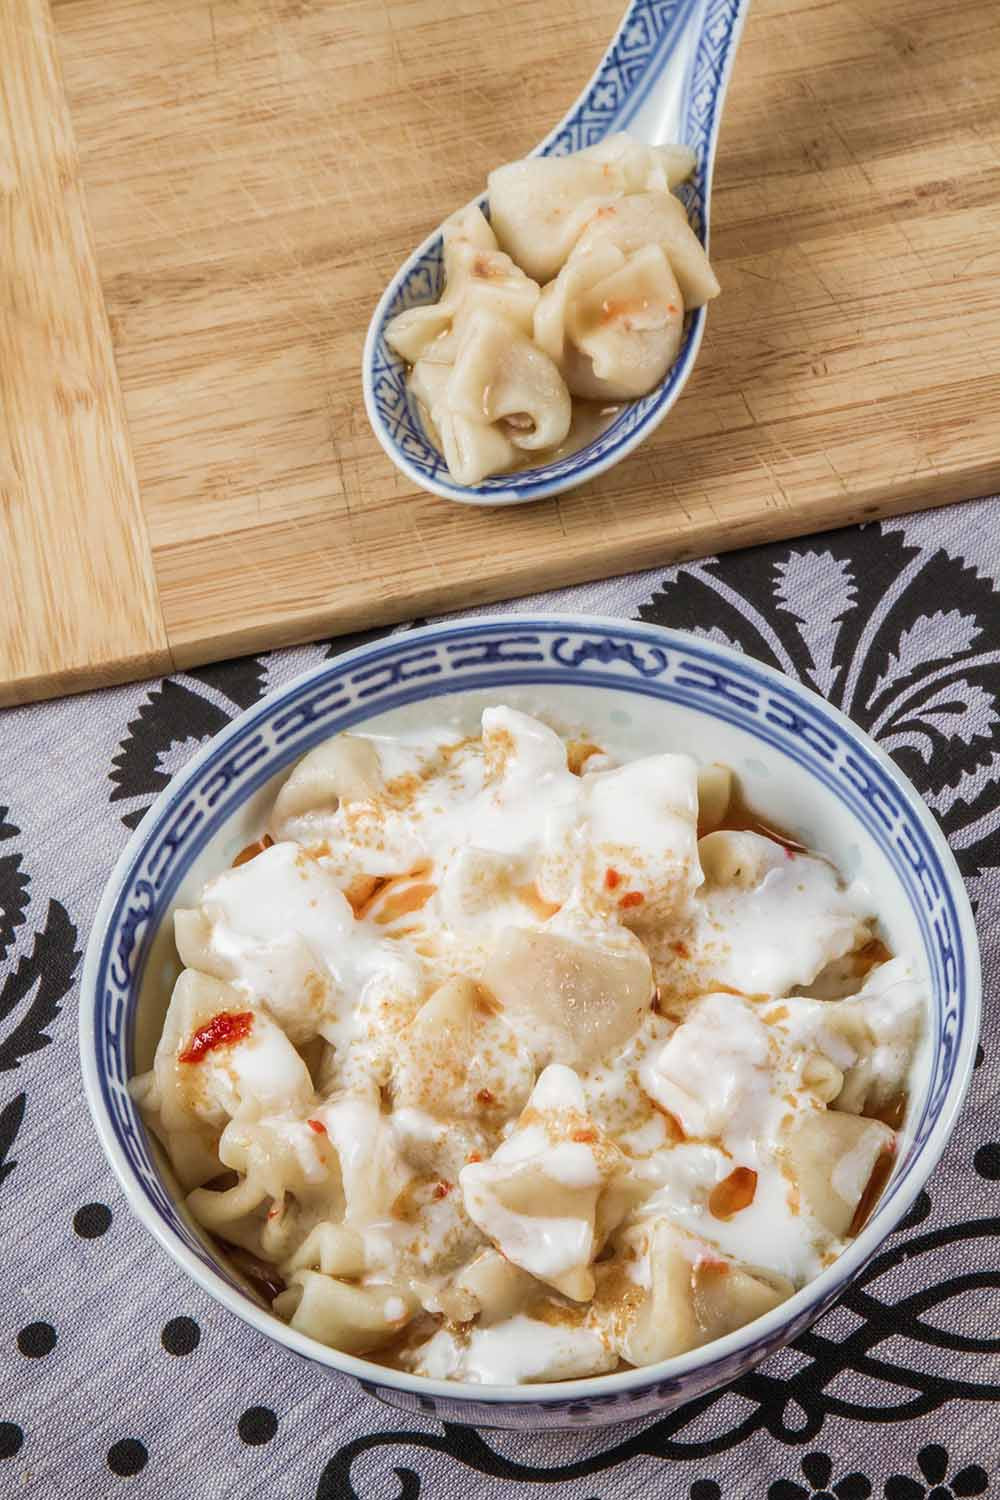 Sanal Manti Turkish Dumplings with Yogurt Sauce